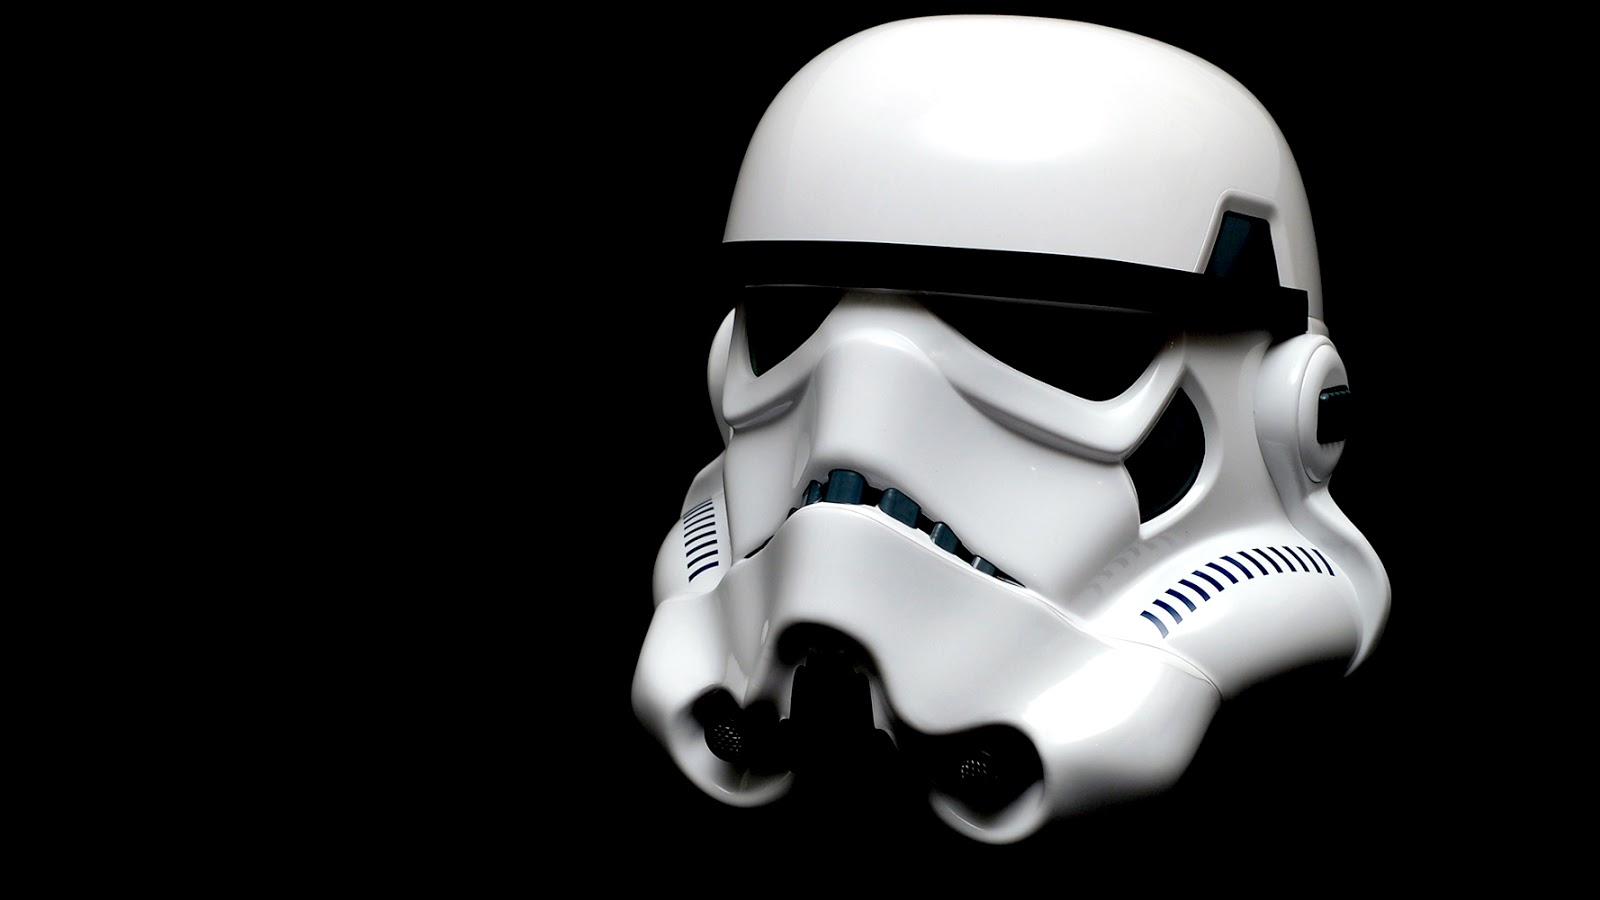 stormtroopers star wars hd wallpapers hd wallpapers. Black Bedroom Furniture Sets. Home Design Ideas